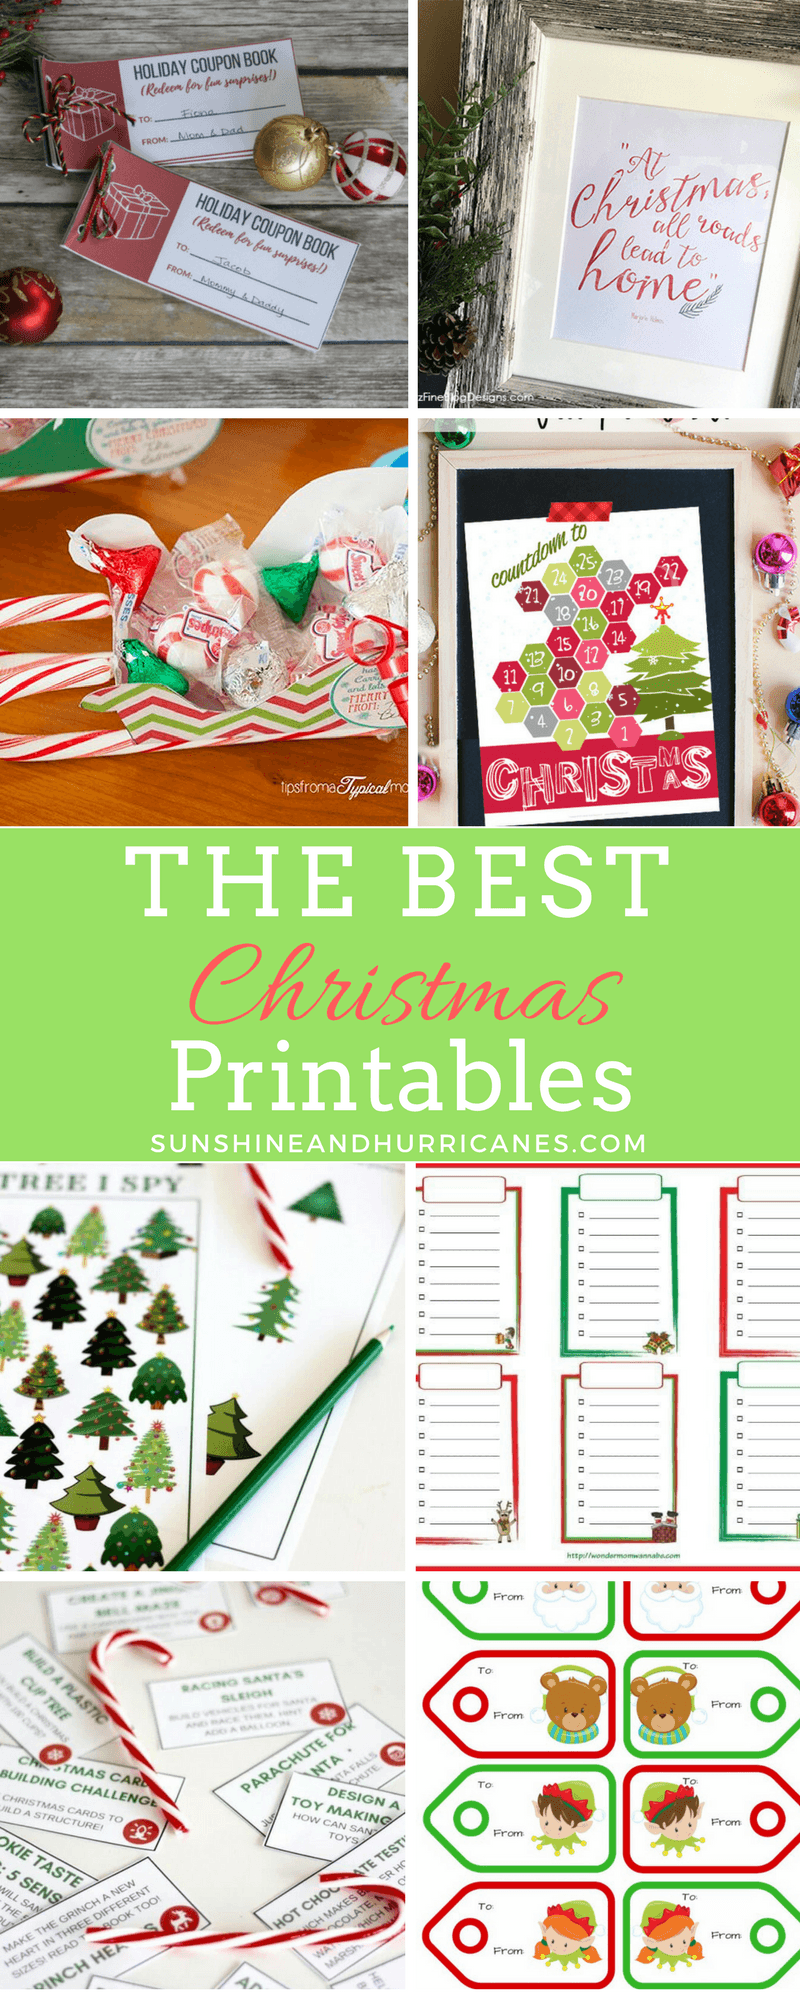 Christmas Printables of all kind are a perfect for adding festive holiday decor to your home, personalizing christmas gift giving or finding fun holiday activities for the kiddos.